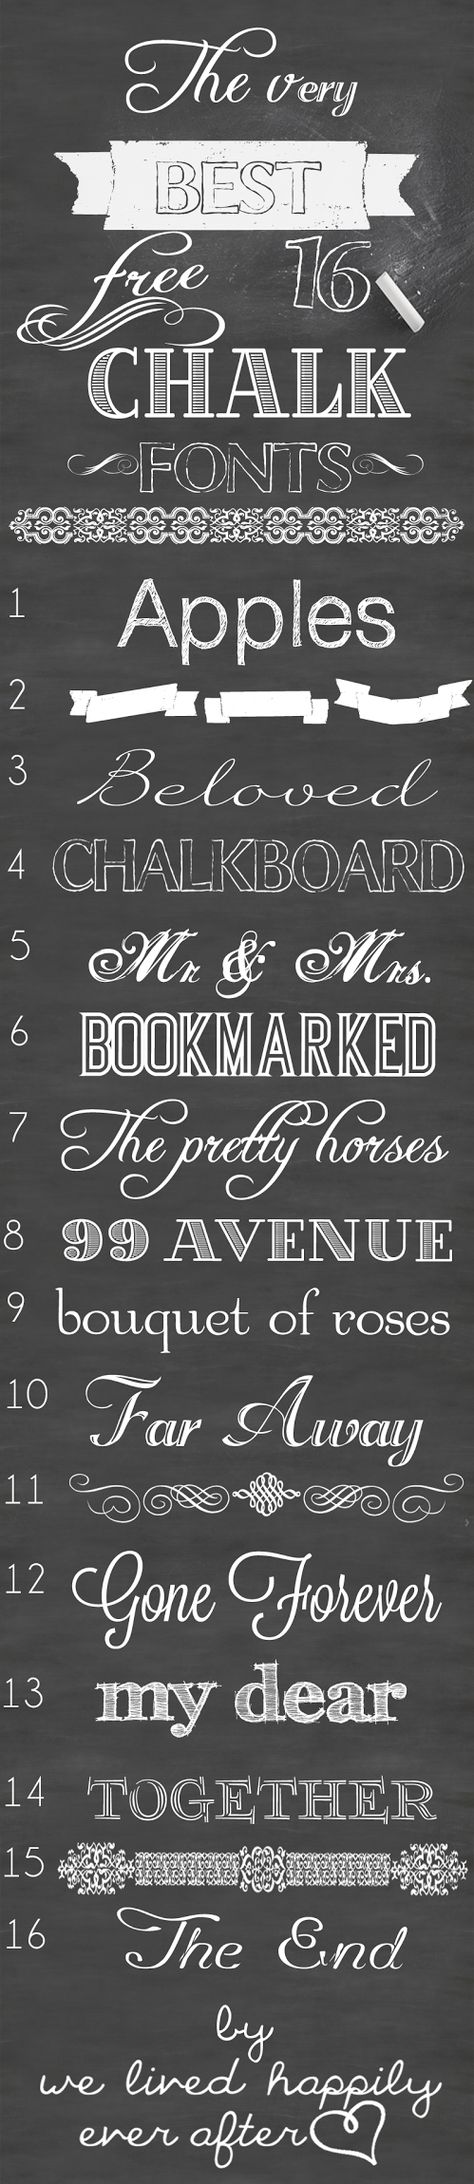 We Lived Happily Ever After: The Very Best 16 Free Chalk Fonts  ~~ {16 free fonts w/ links}